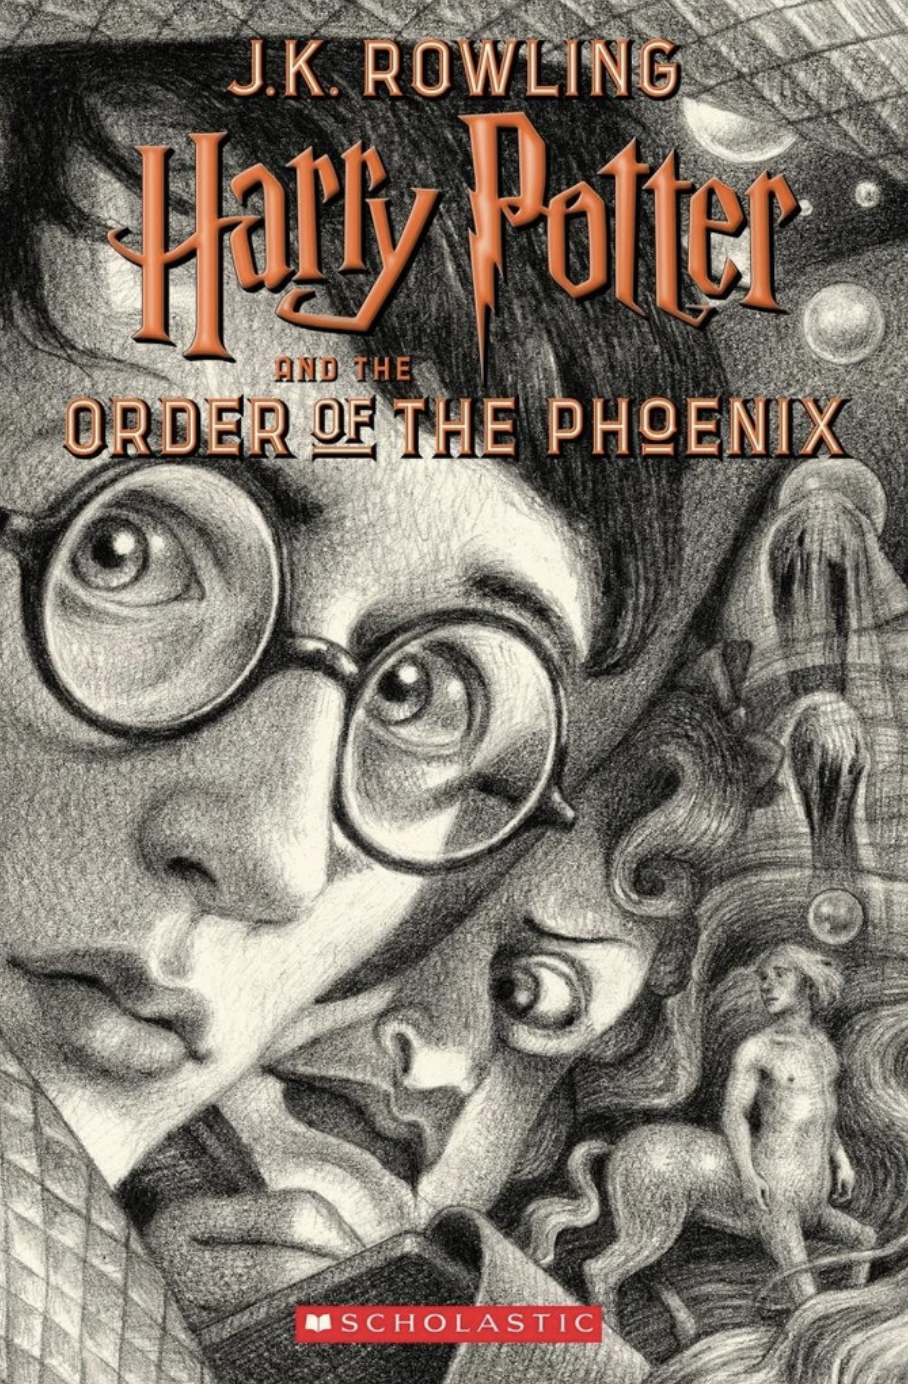 Harry Potter and the Order of the Phoenix — J.K. Rowling